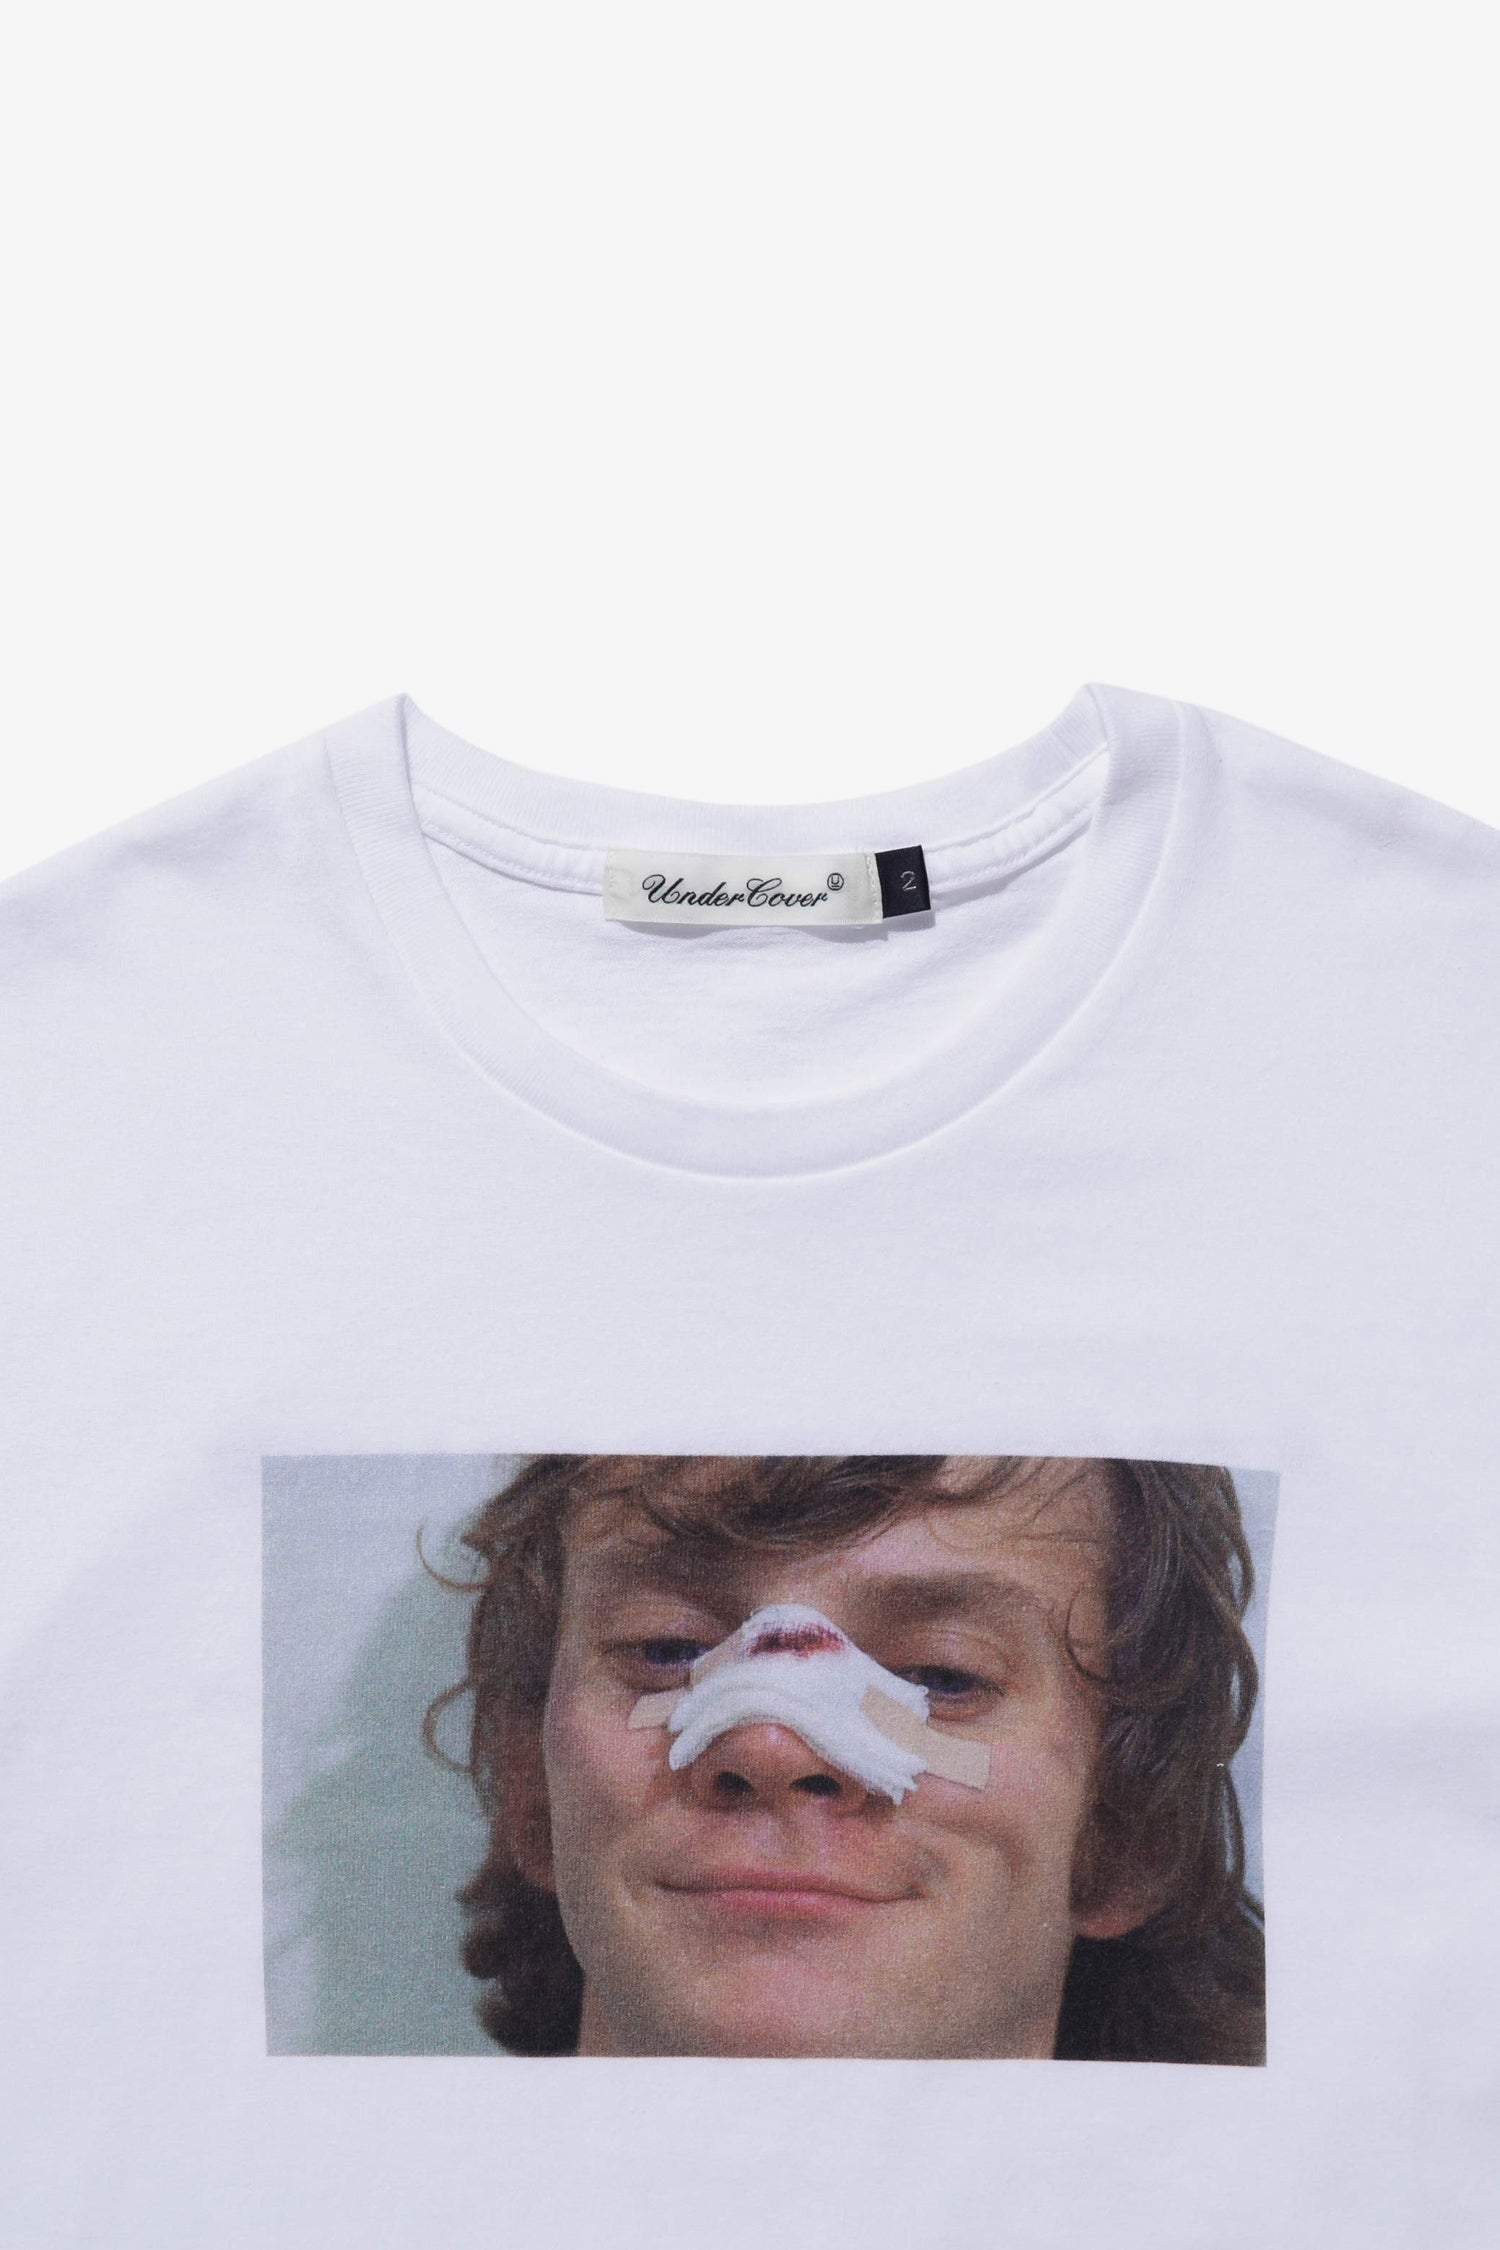 Clockwork Orange Printed T-shirt